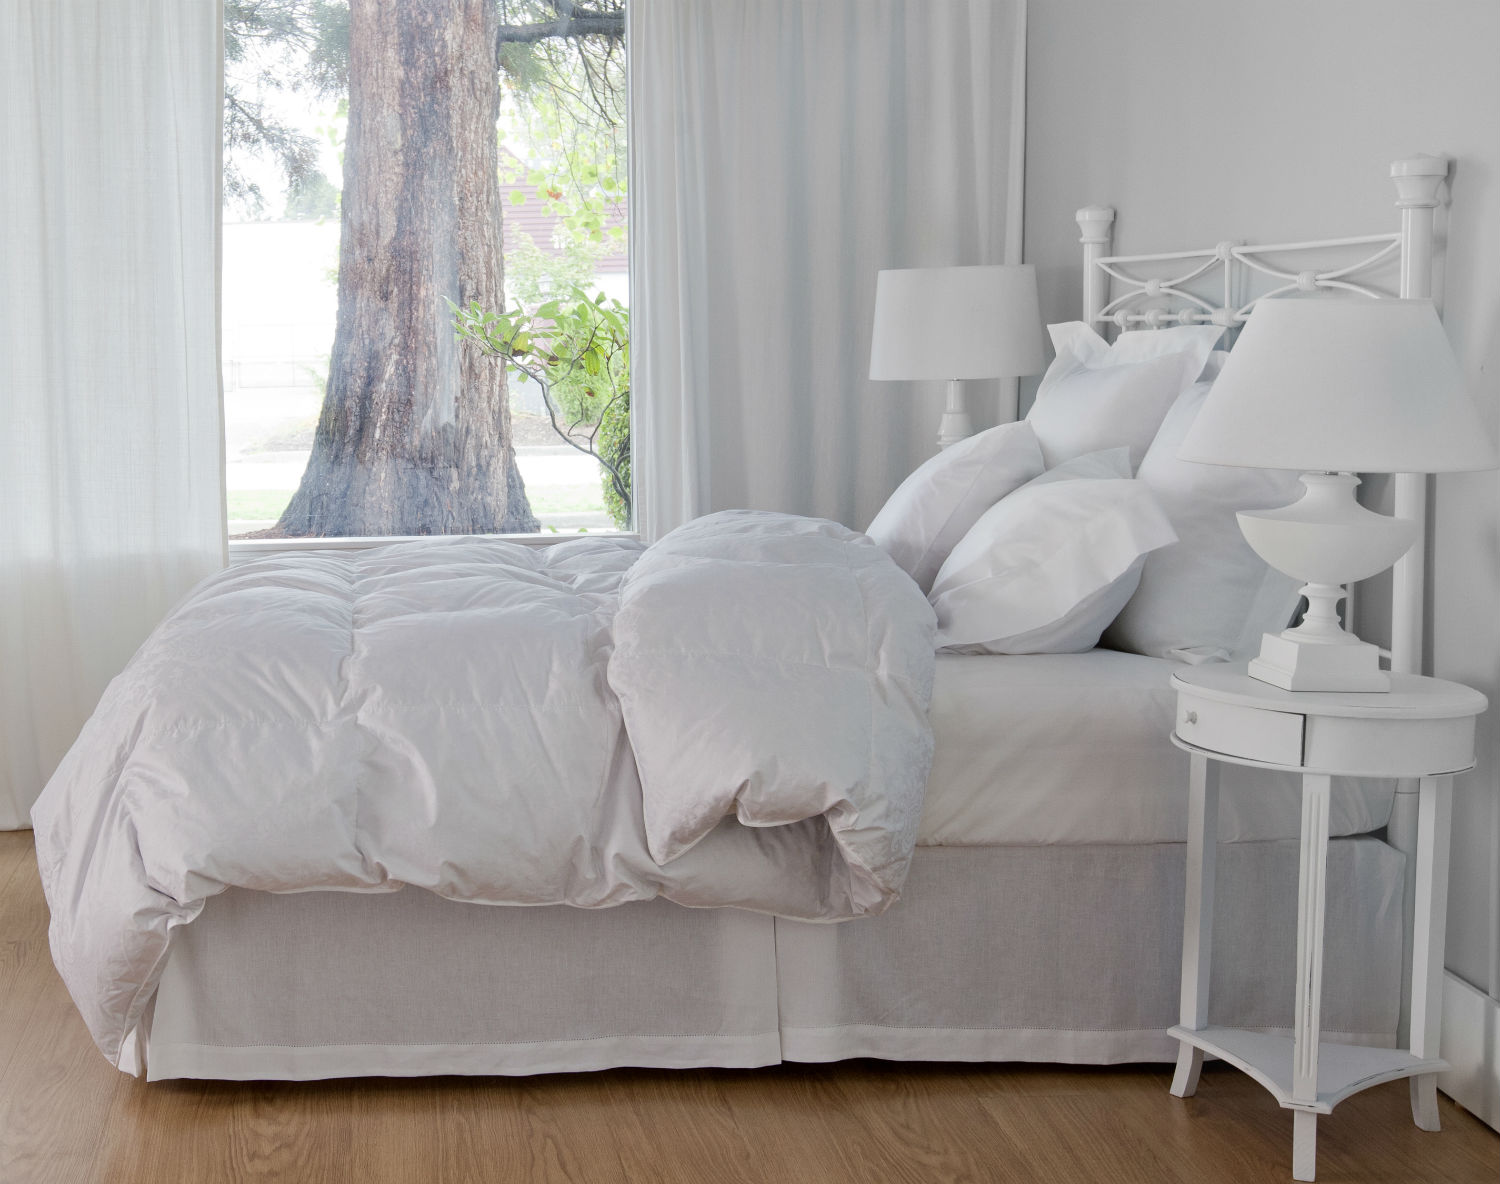 Genuine Eiderdown With Cotton Cover Duvet/Down Comforter & Pillows by St. Geneve Luxury Bedding